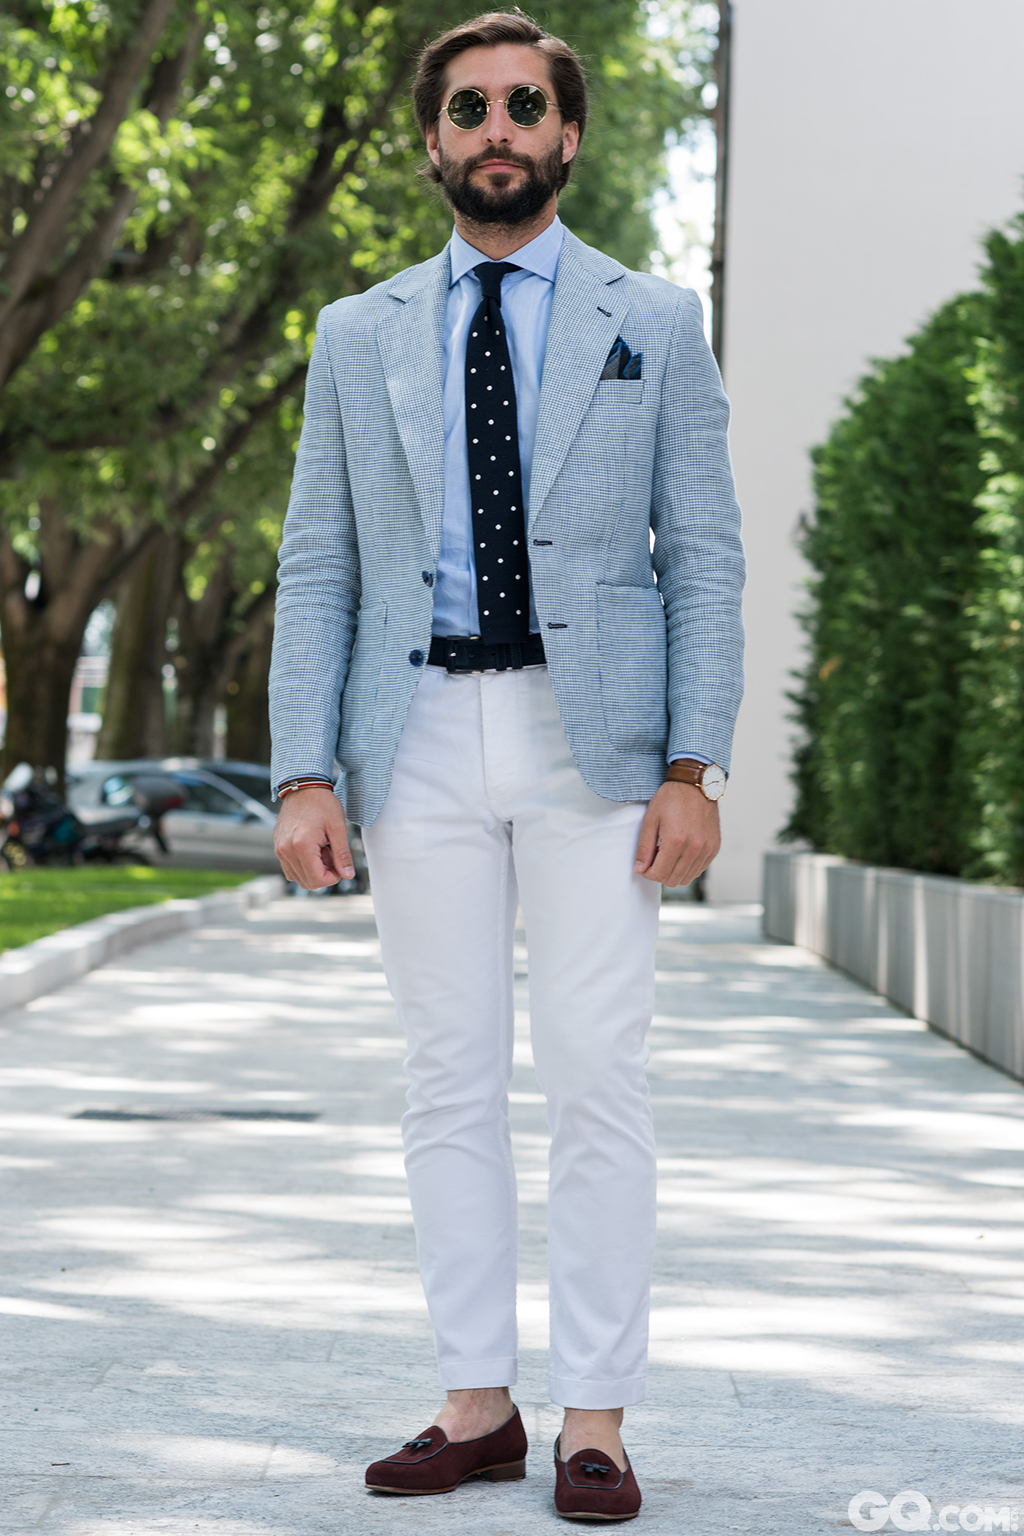 Alvaro All look: Anglomania Shoes: Harris Cheapest piece: My tie Oldest piece: My jacket from last summer   Inspiration: I prefer to stay in white and blue during these hot days. I like to dress comfortable.(我更喜欢在这炎热的天气里待着蓝天白云下。我喜欢舒适的穿着)